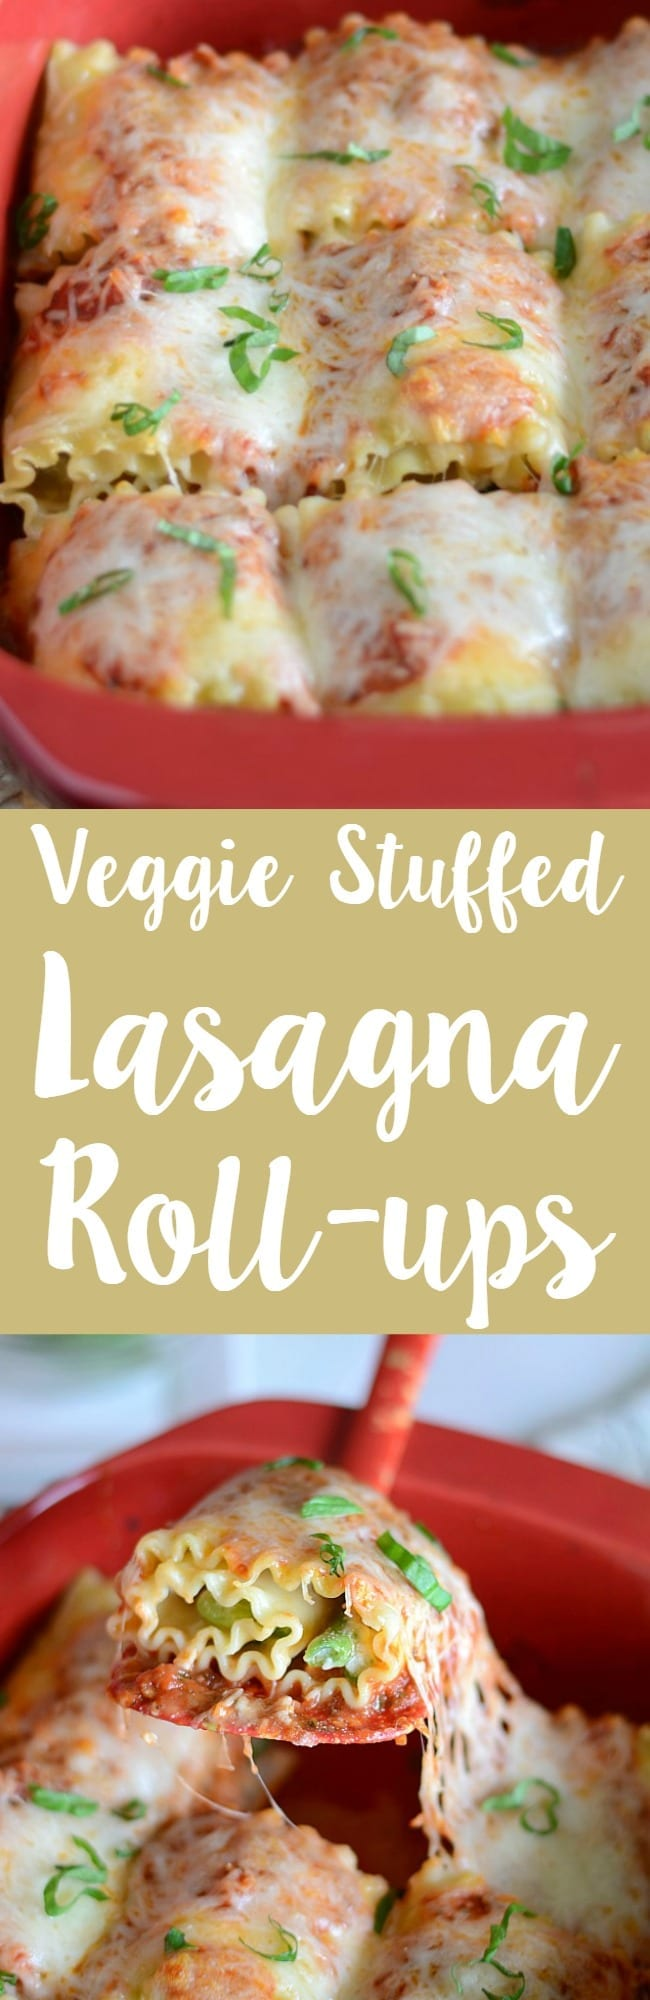 Veggie stuffed lasagna roll-up recipe! These roll ups are filled with fresh veggies, ricotta cheese and mozzarella!